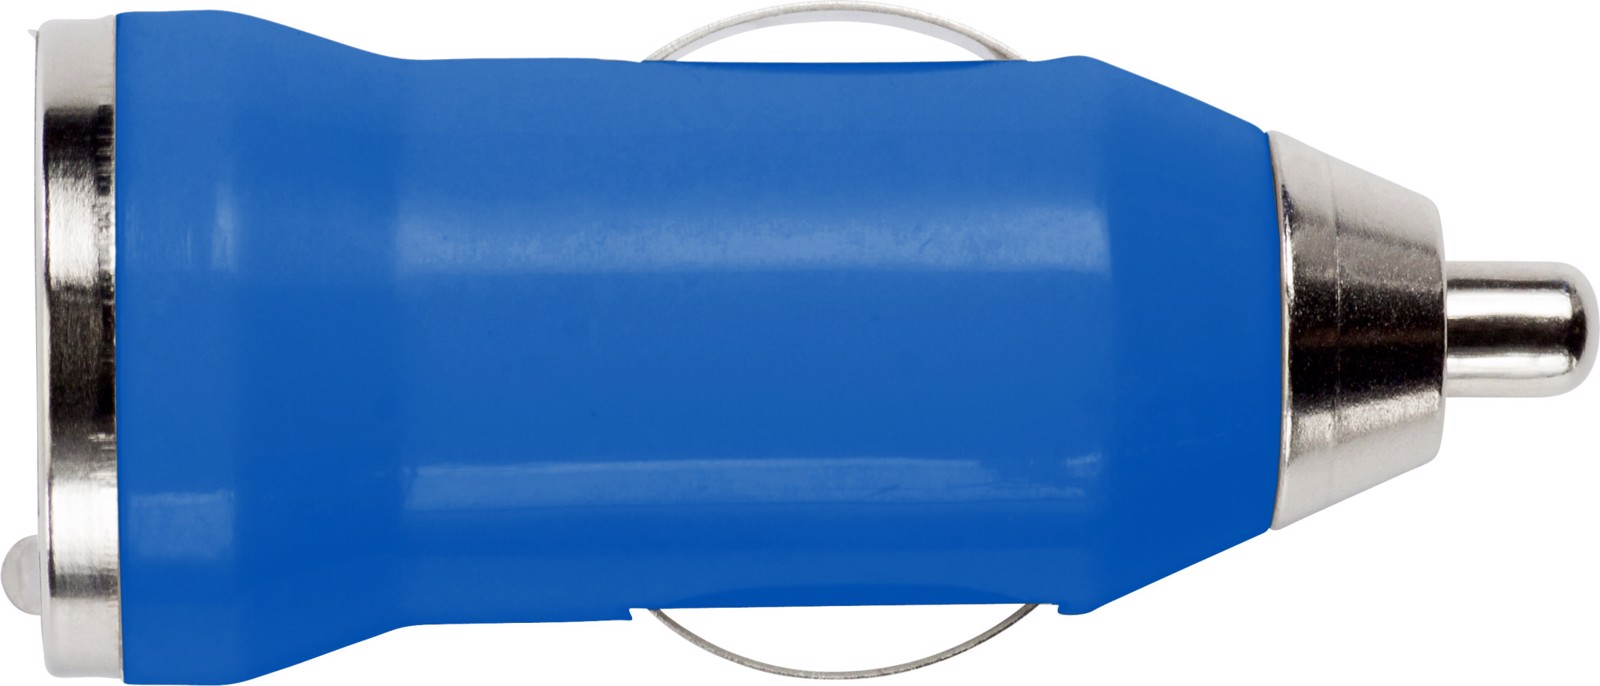 ABS car power adapter - Cobalt Blue